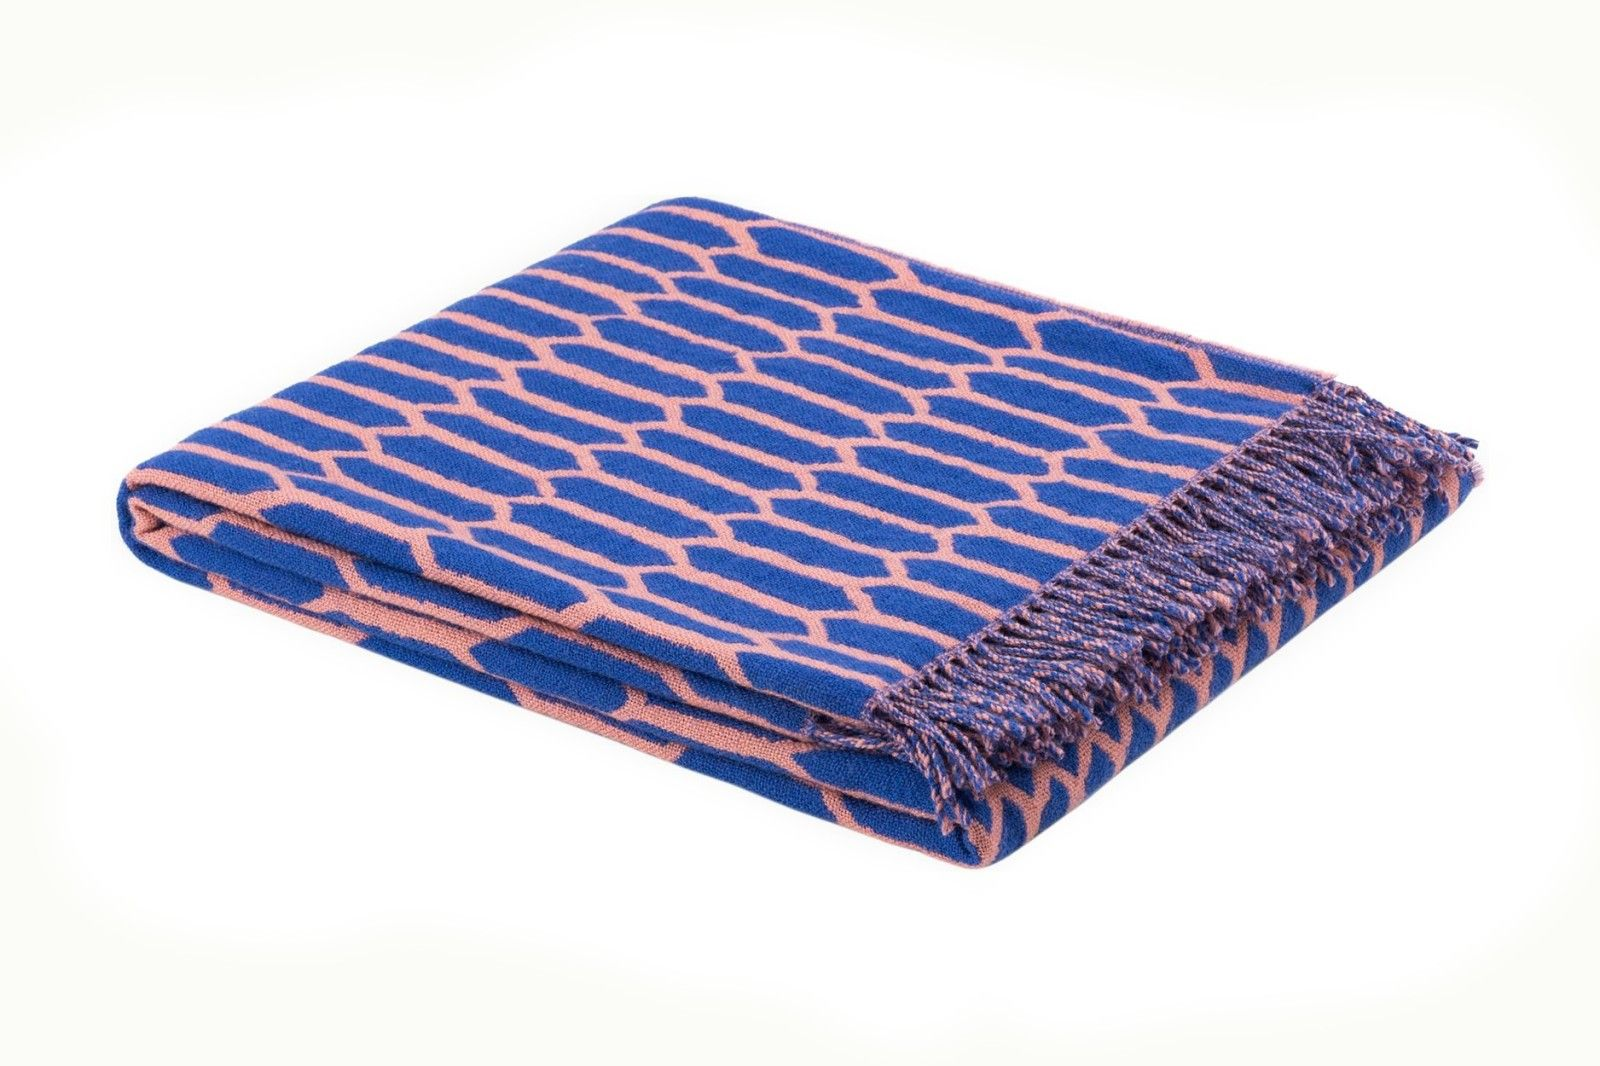 Scribble Throw Kenno Pink Blue Hand Sketch Throw Pillows Blankets Throws